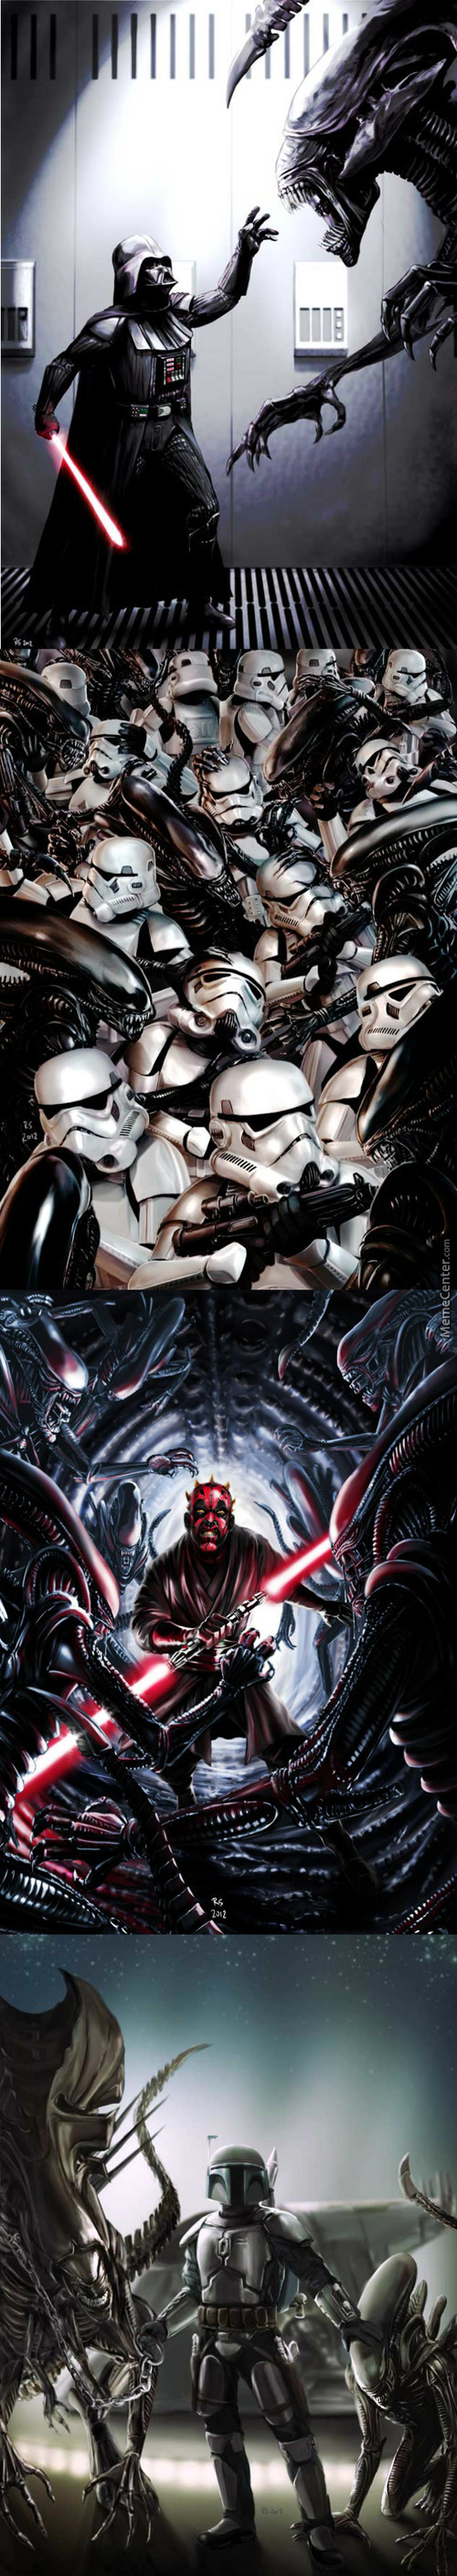 Robert Shane's Star Wars Vs. Aliens.